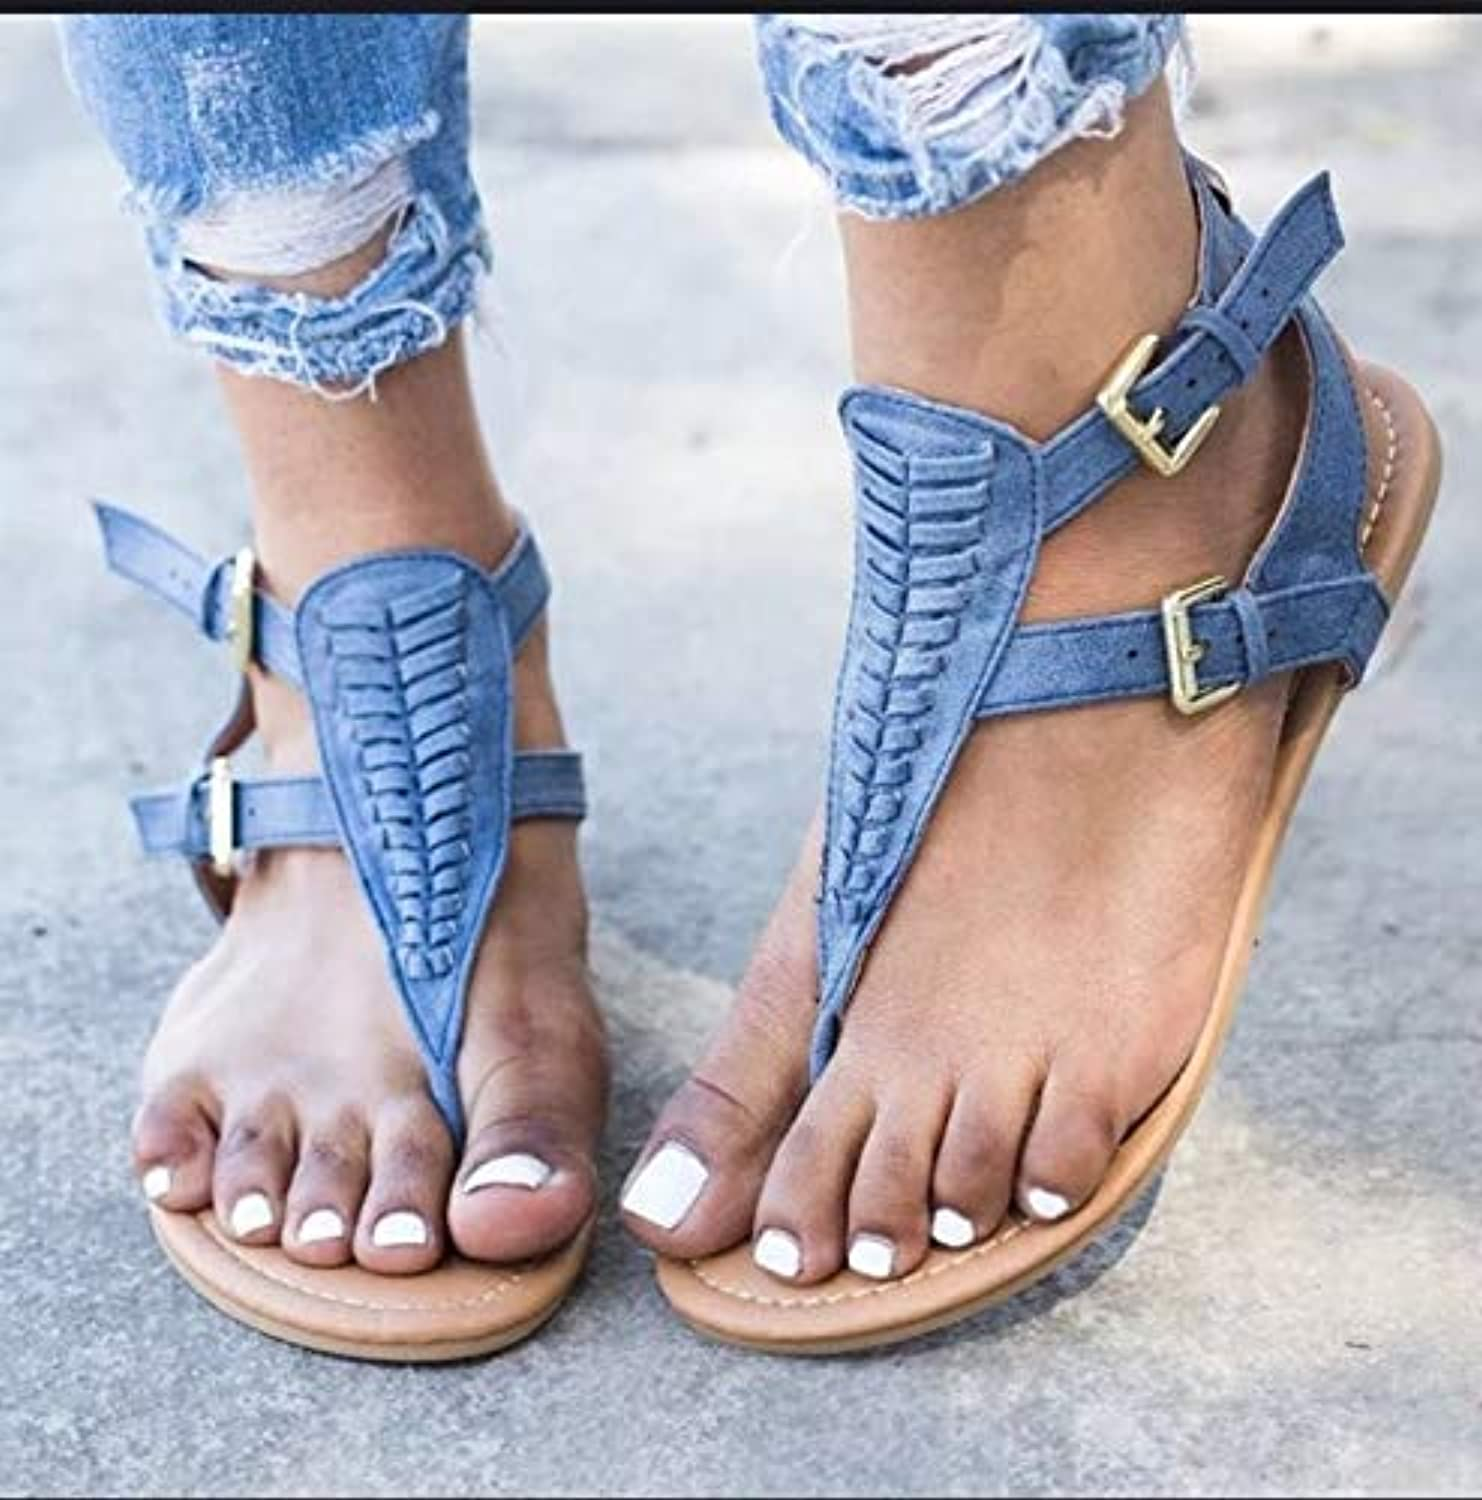 Comfortable and beautiful ladies sandals Buckle, Rome shoes, Sandals, Female Feet, Fishbone Clasps, Low Heels And Rome shoes.